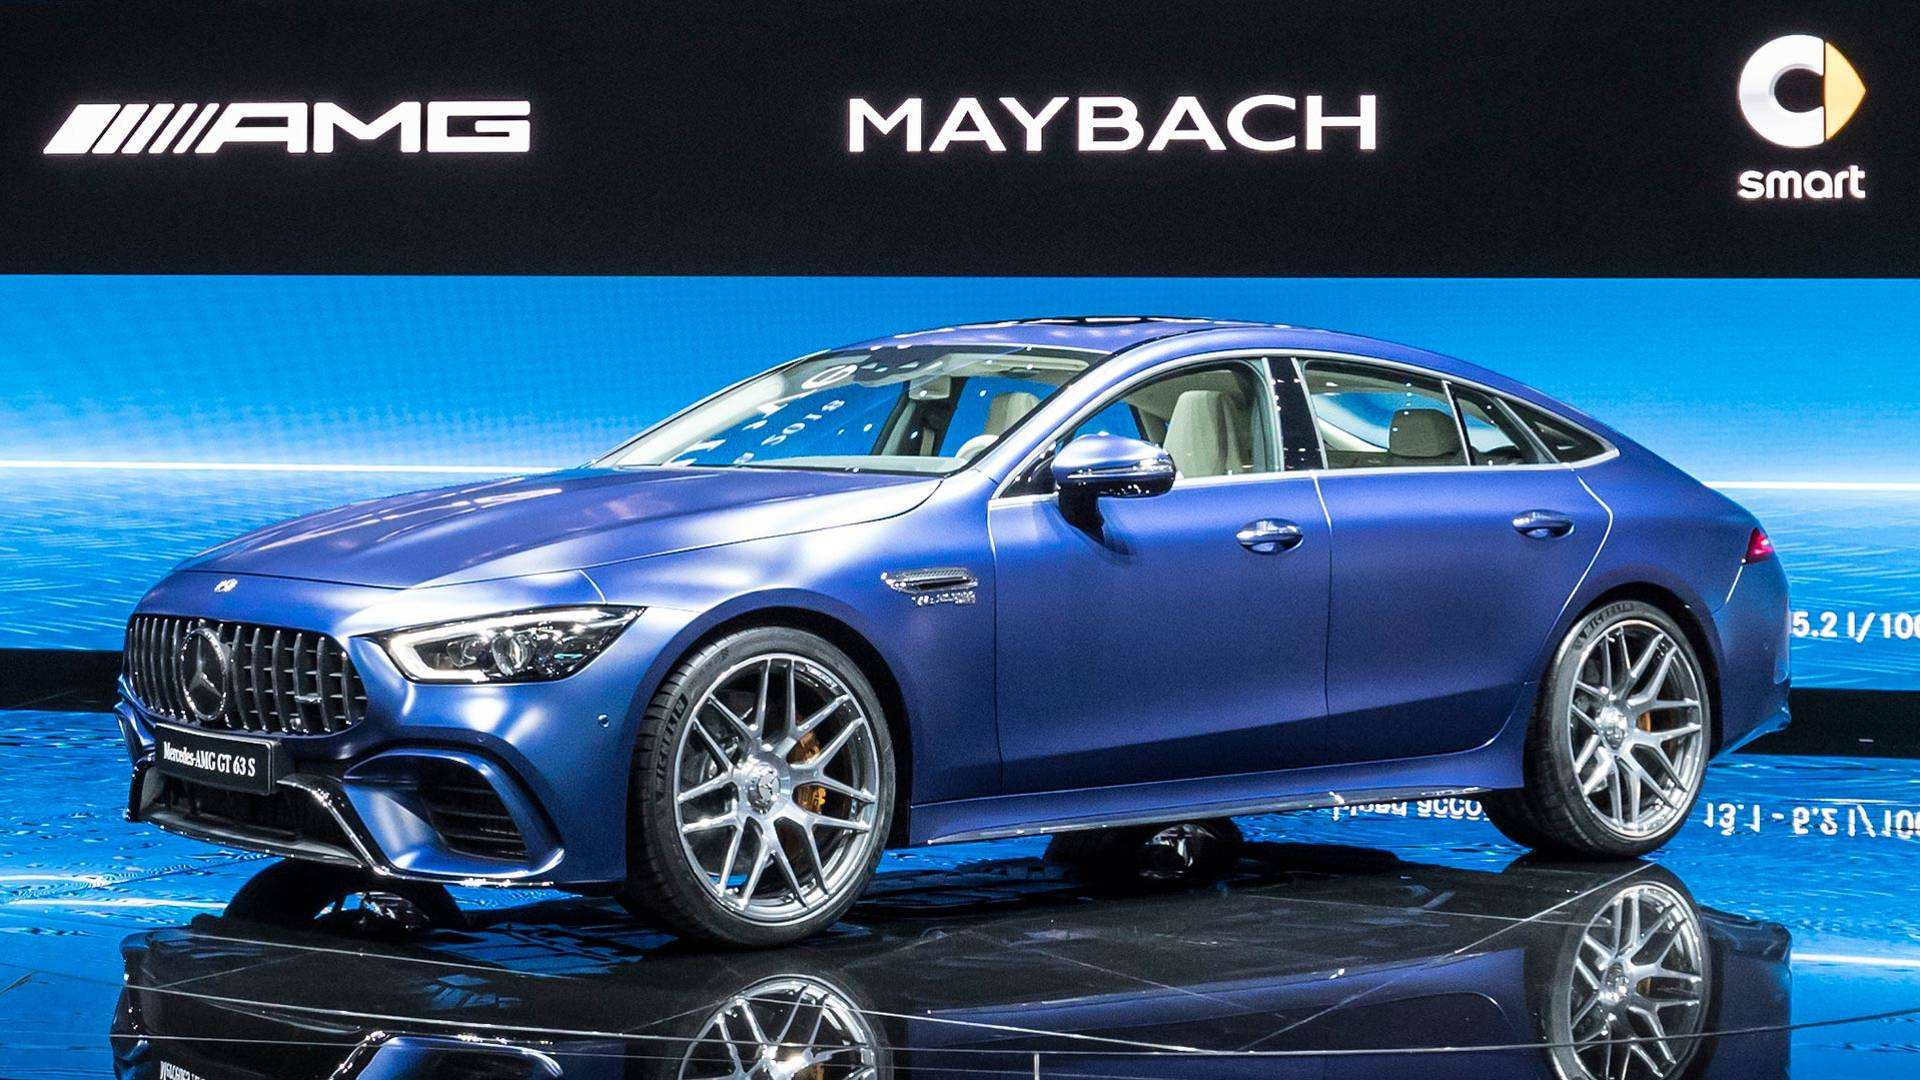 89 Best Review New 2019 Mercedes Amg Gt 4 Door Coupe Price Exterior Interior with New 2019 Mercedes Amg Gt 4 Door Coupe Price Exterior